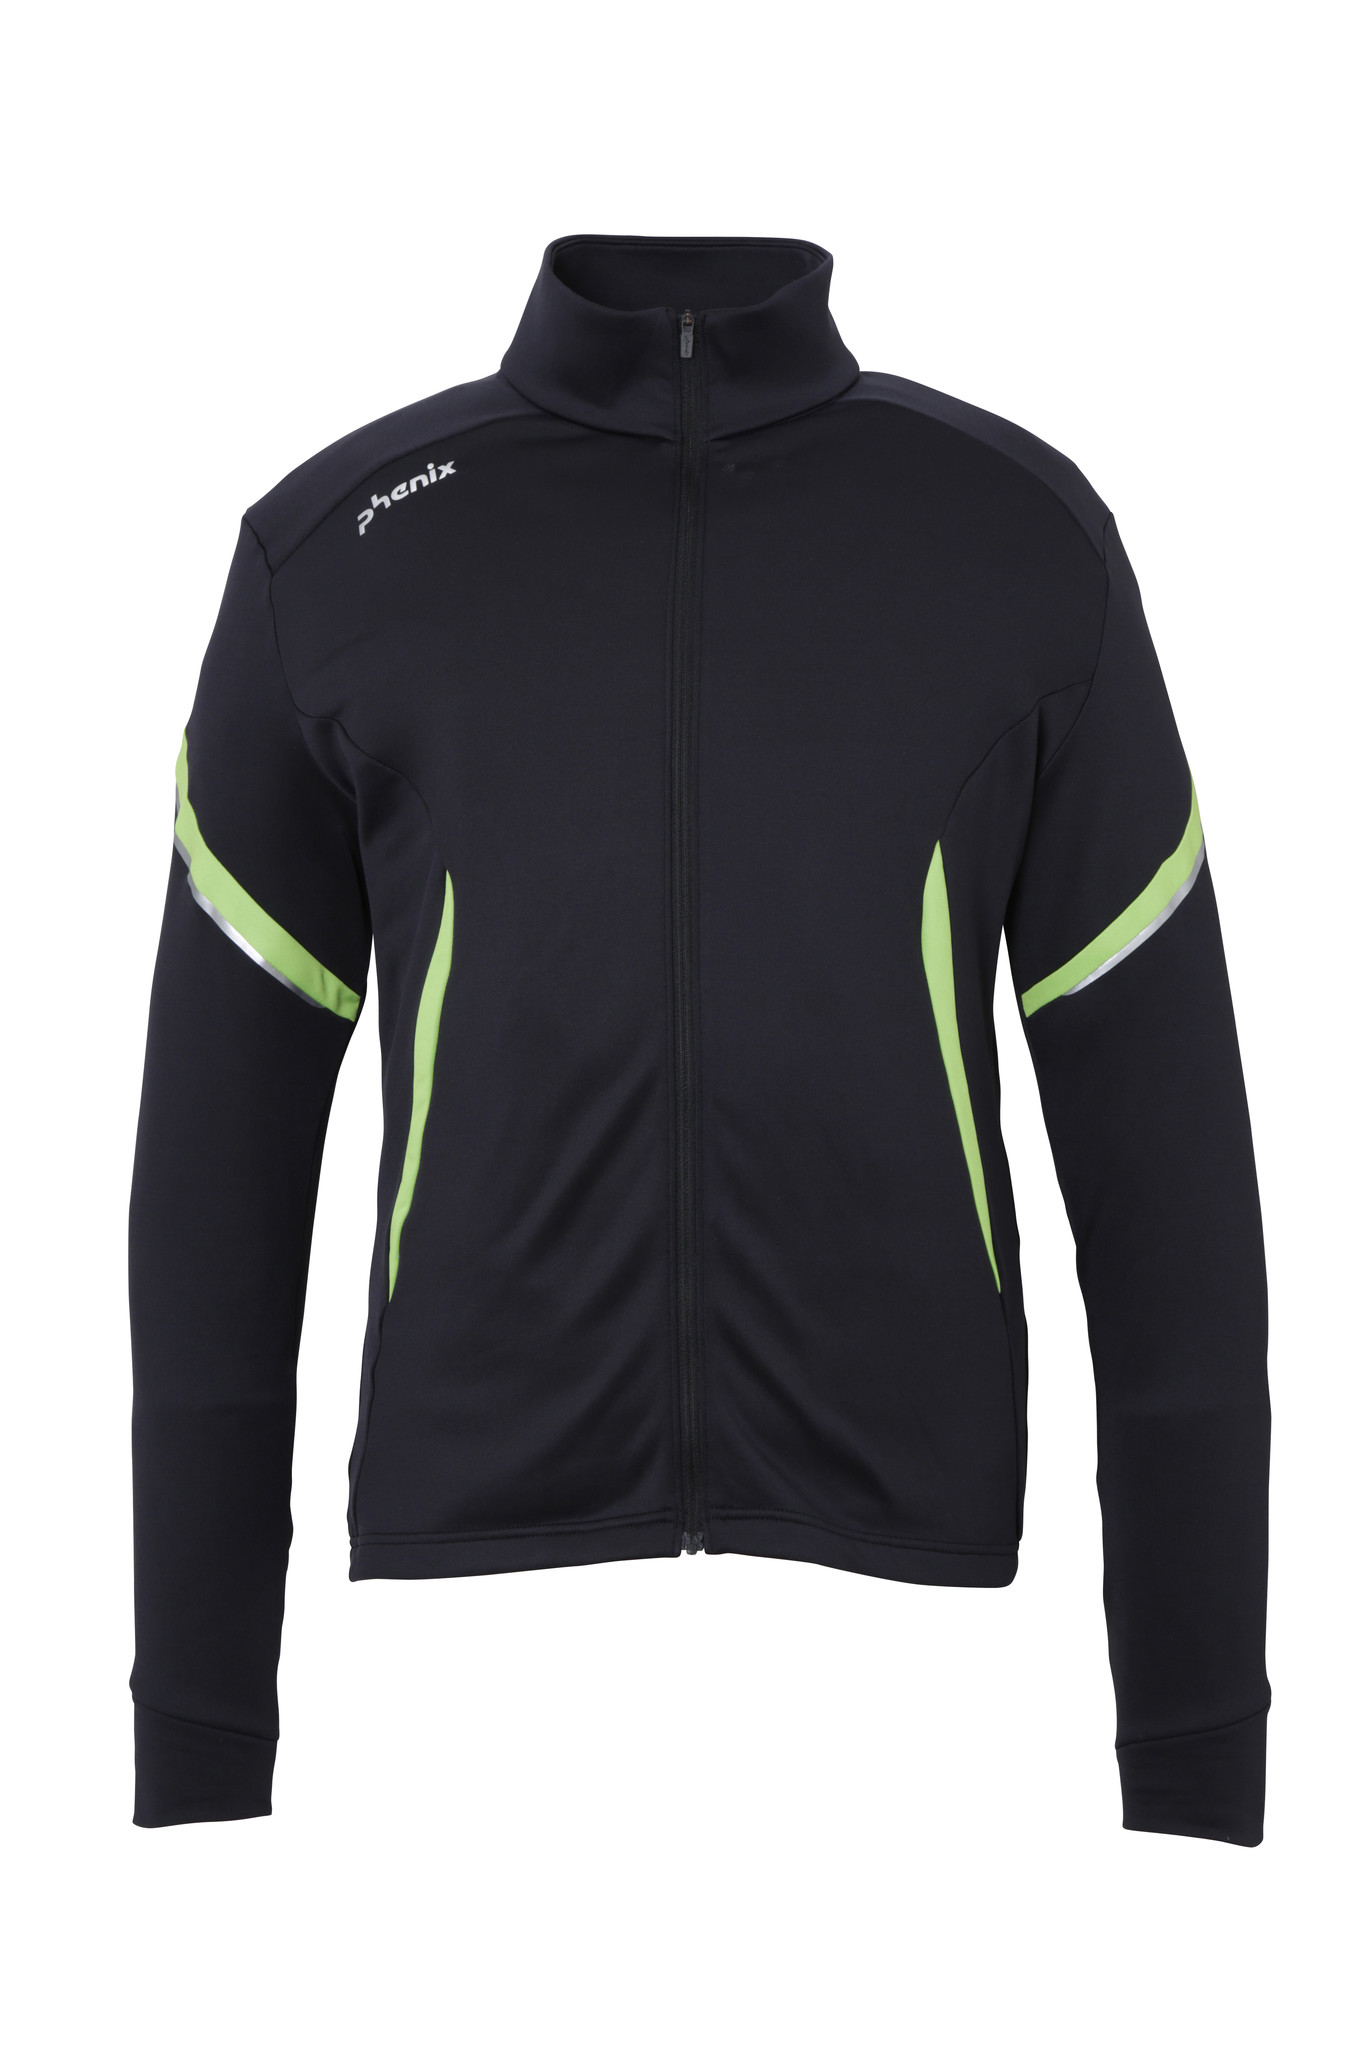 PHENIX Hornet Fleece Jacket